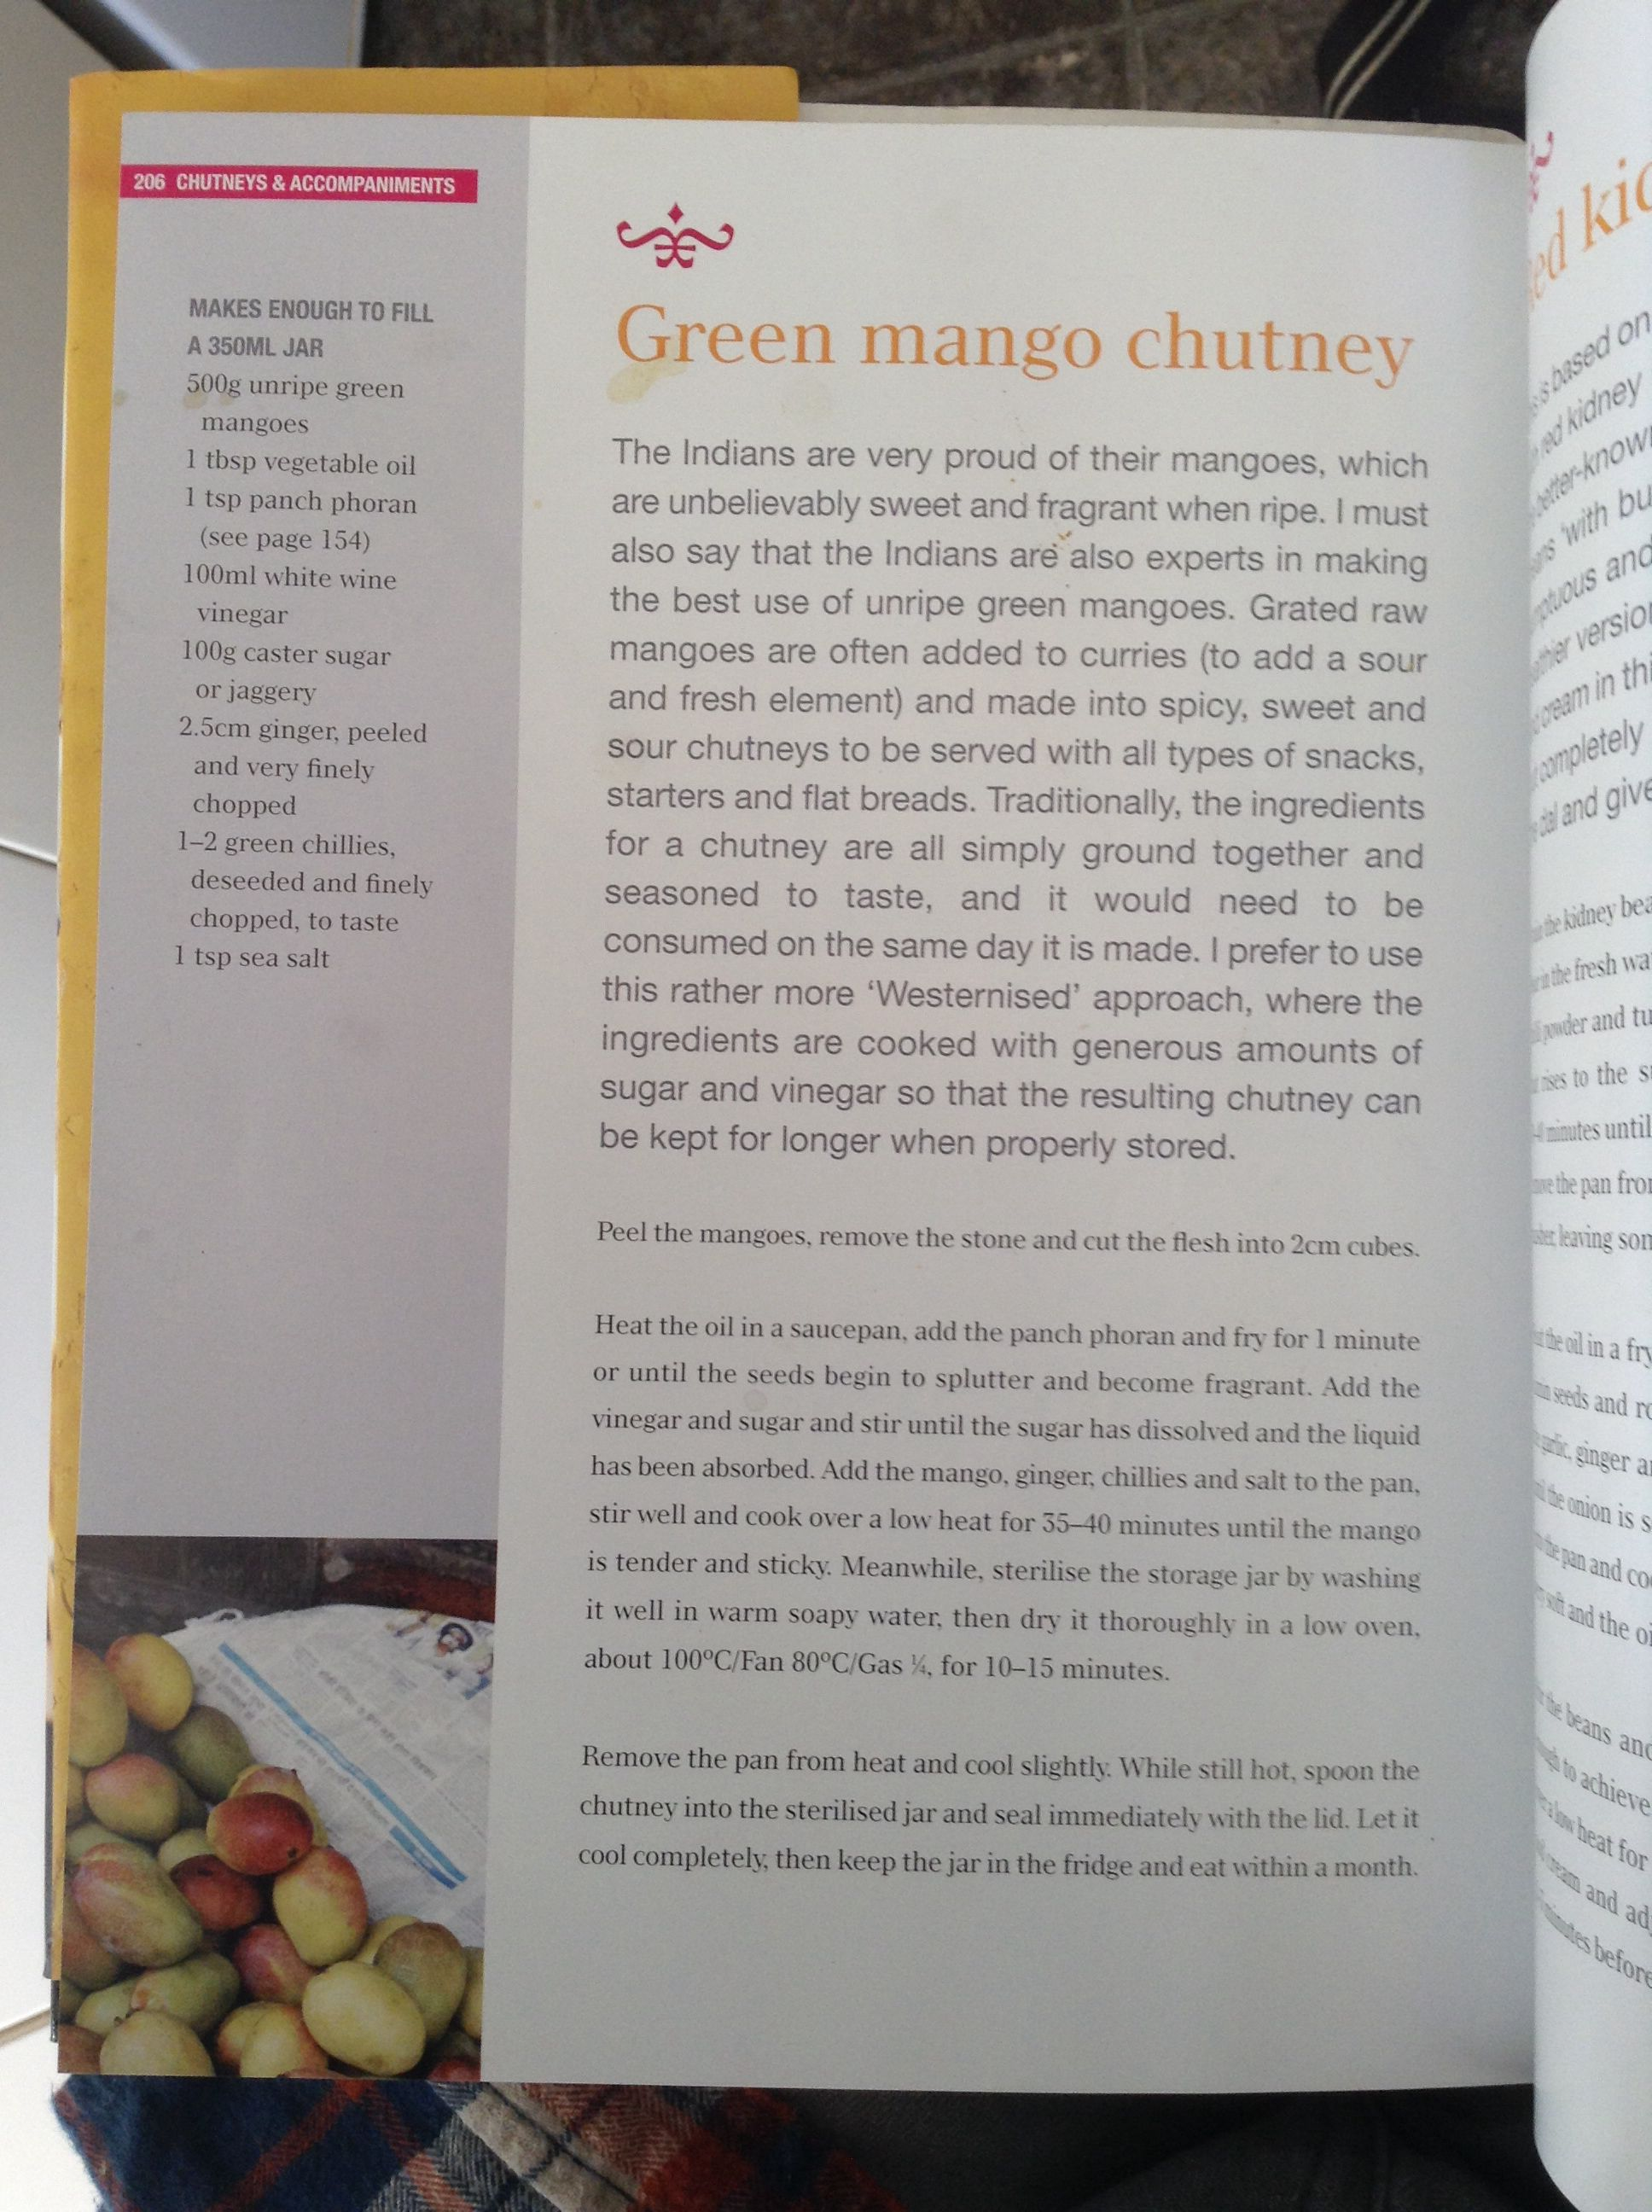 Gordon ramsay green mango chutney curry christmas pinterest gordon ramsay green mango chutney ccuart Gallery